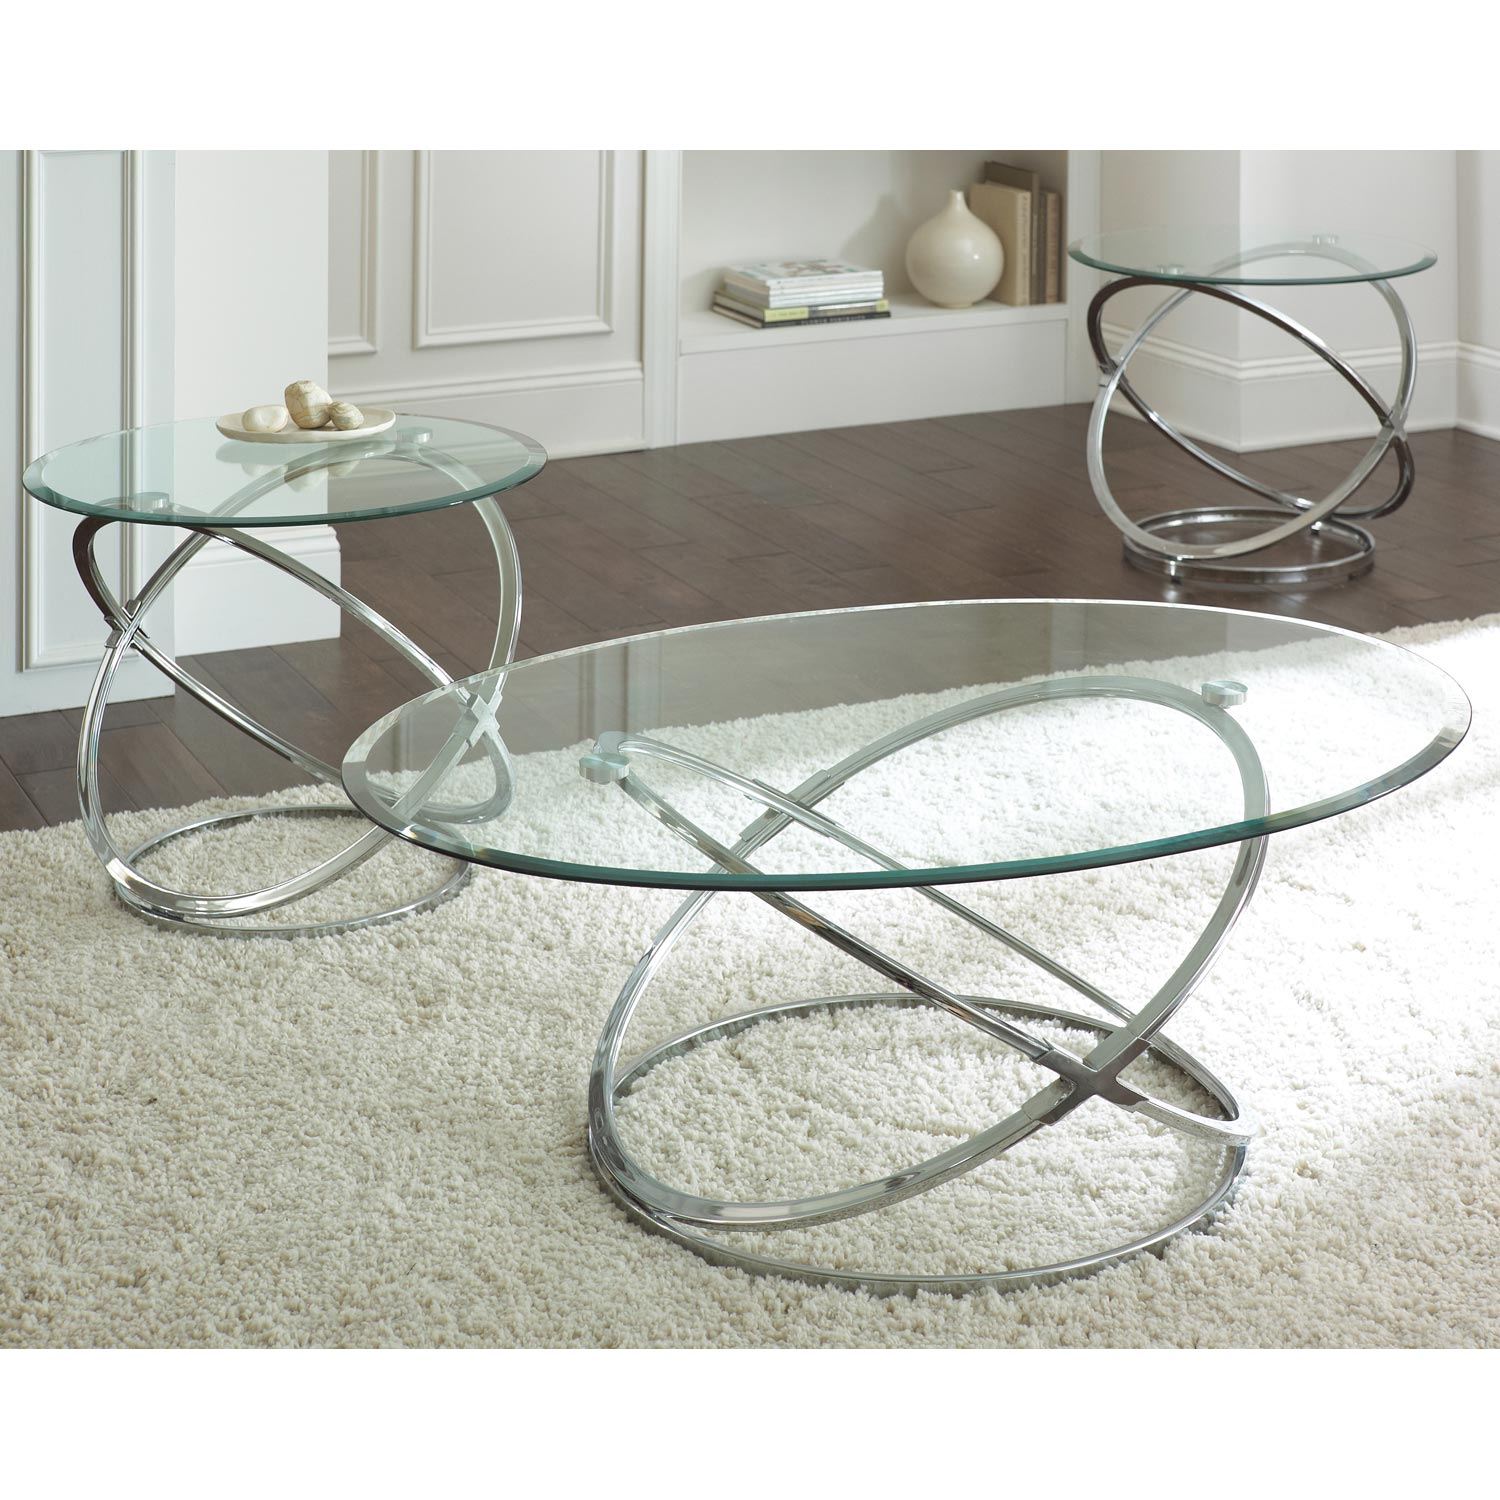 Orion 3 Piece Coffee Table Set Gl Chrome Rings Base Ssc Rn3000t